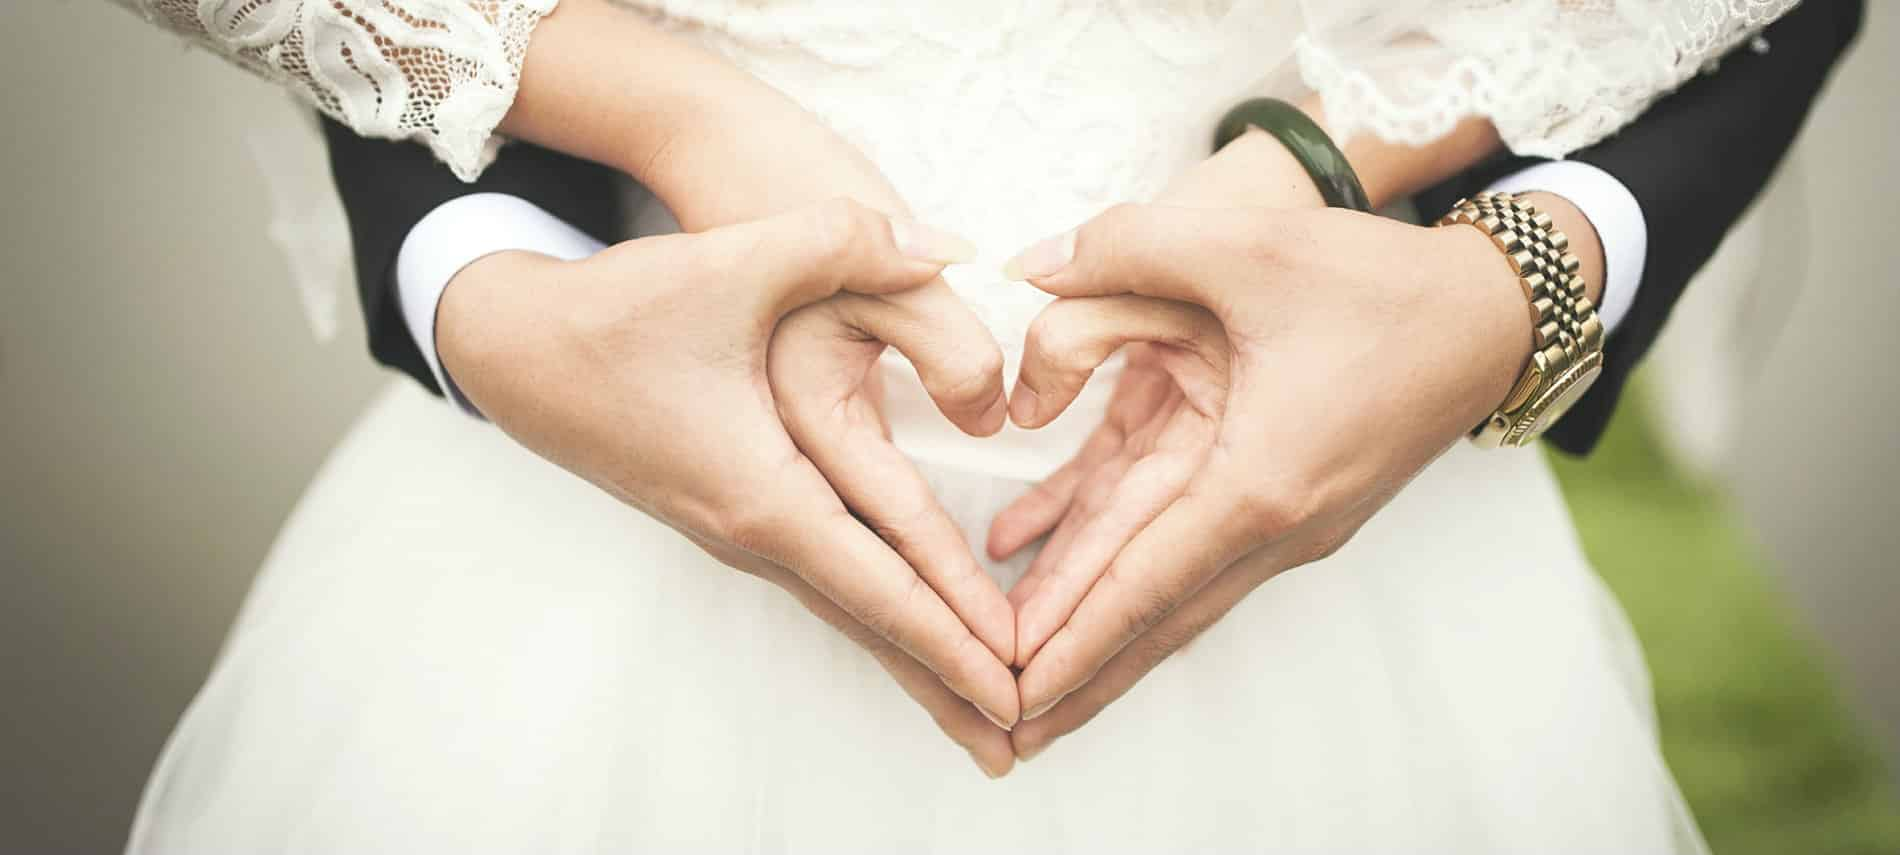 Bride and groom's hands held together in a heart-shape.